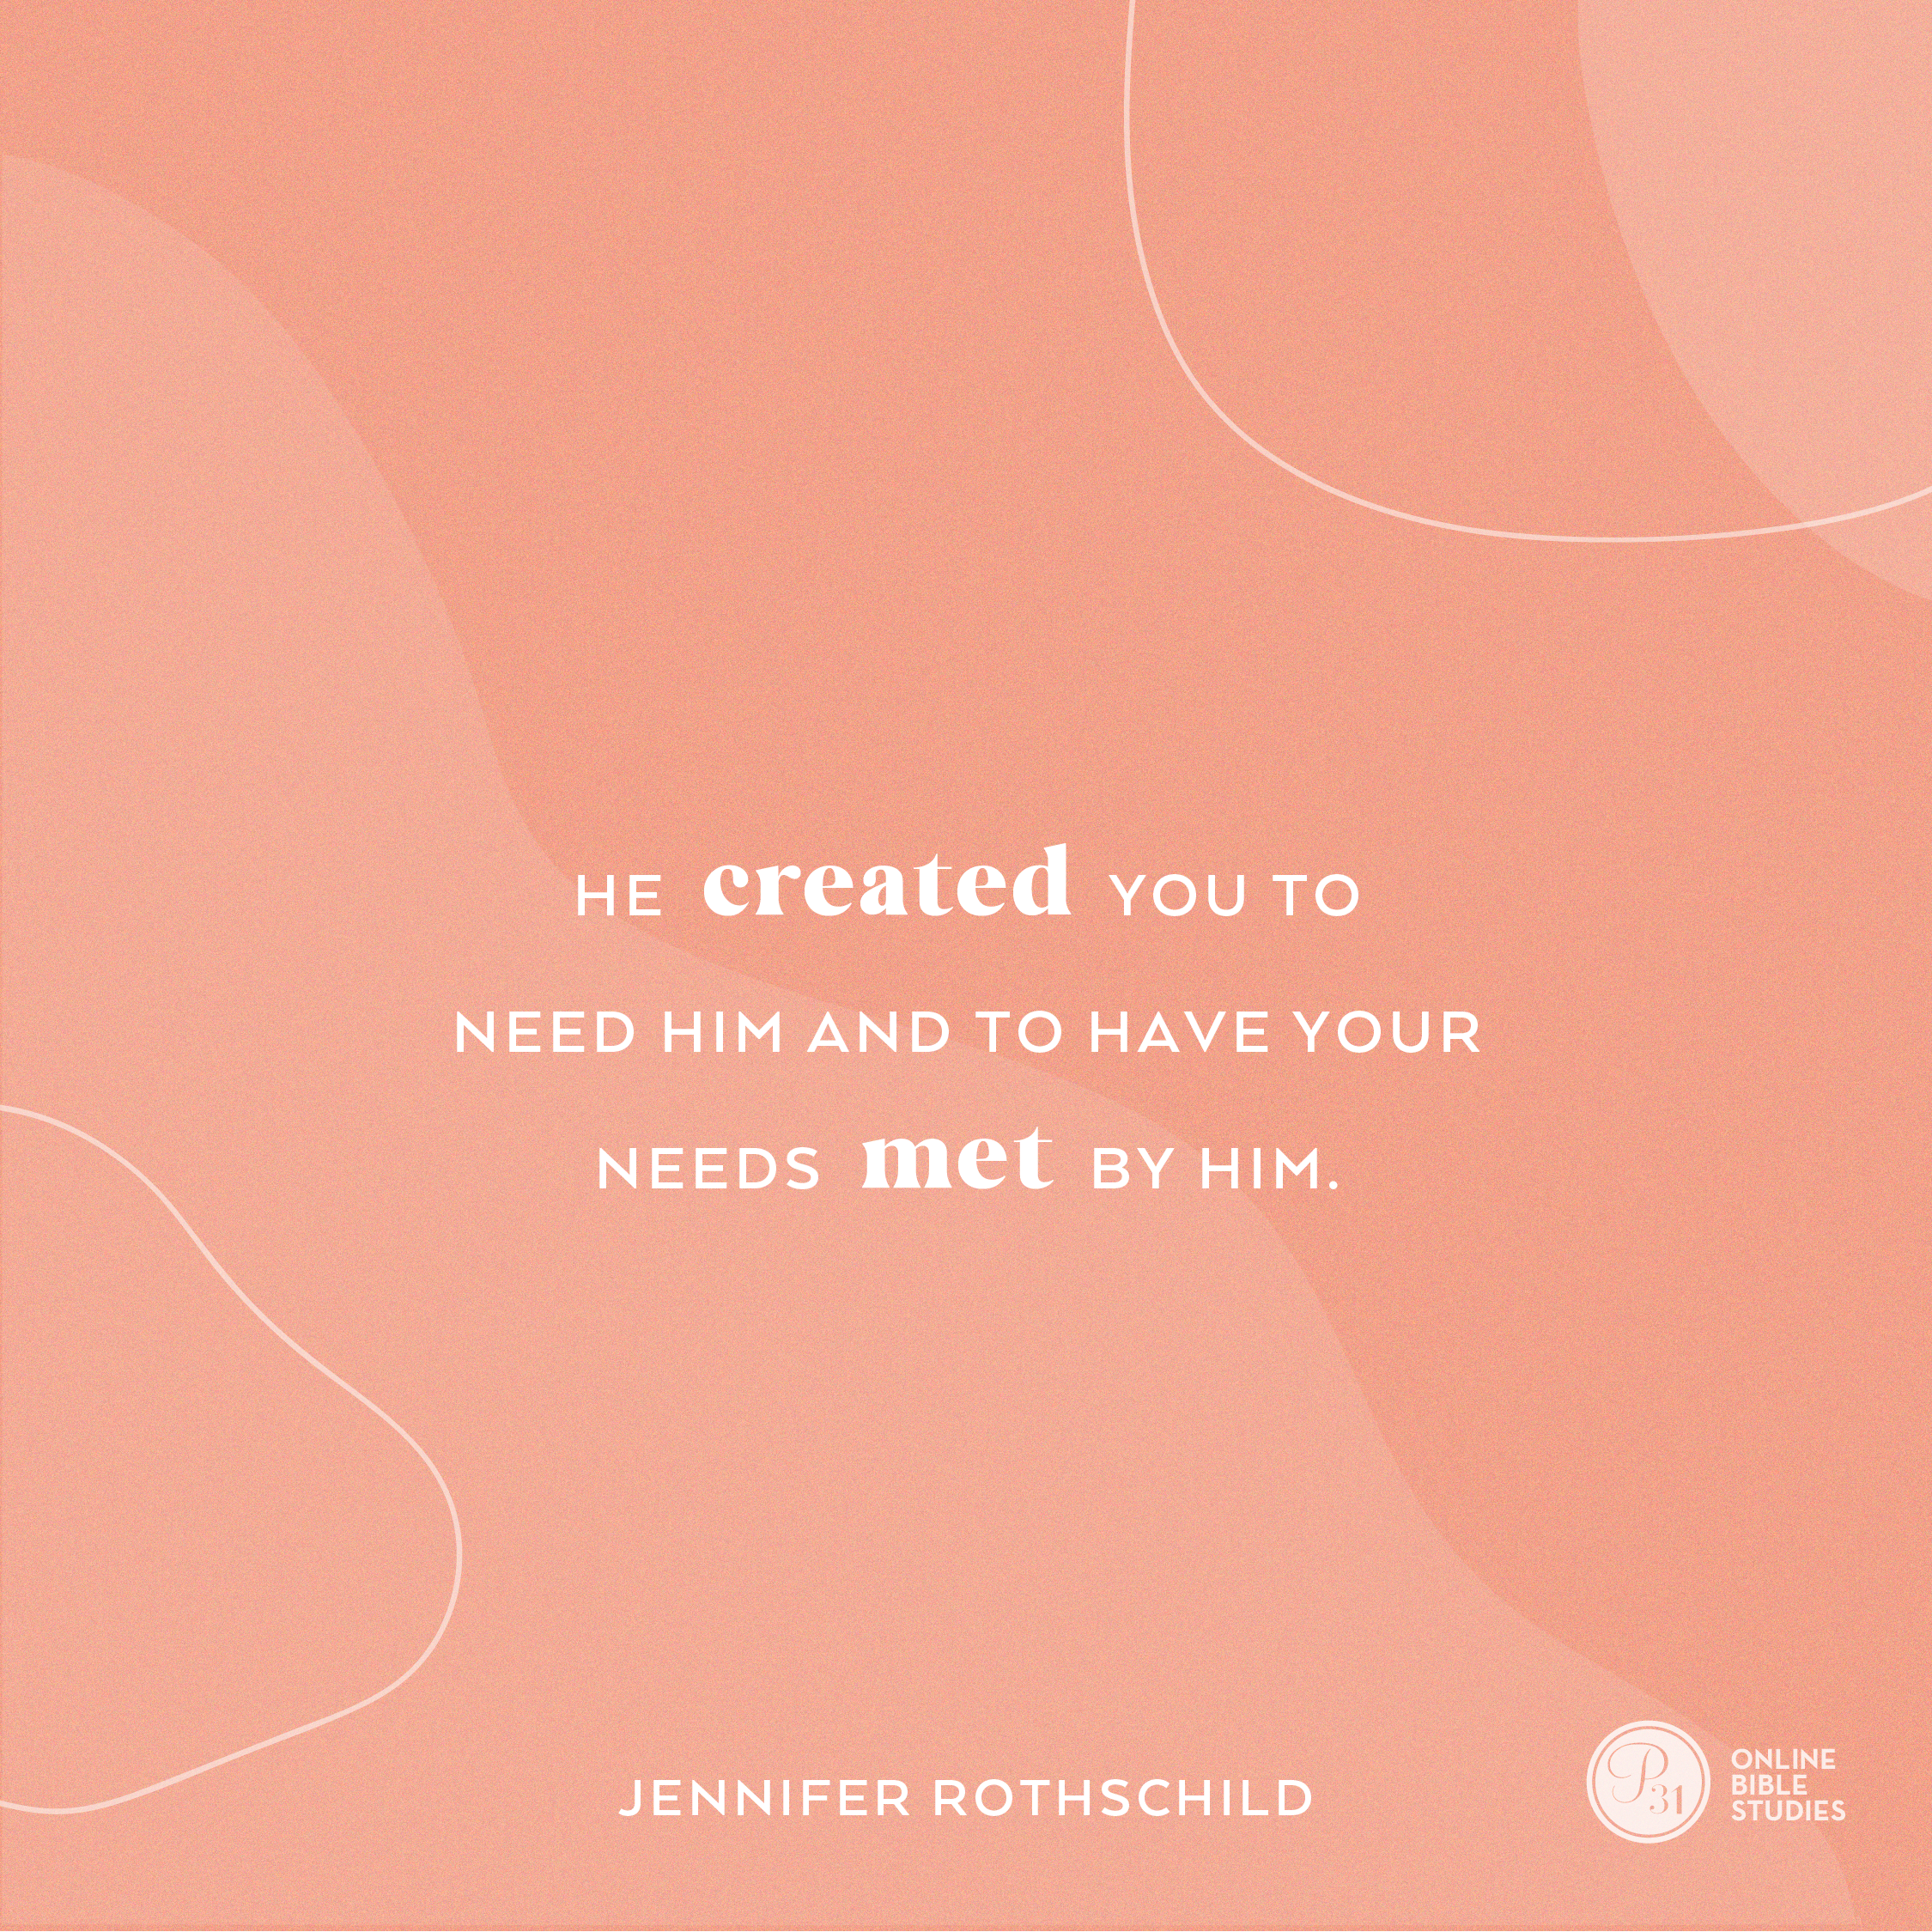 """He created you to need Him and have your needs met by Him.""  - WJennifer Rothschild  #Psalm23Study